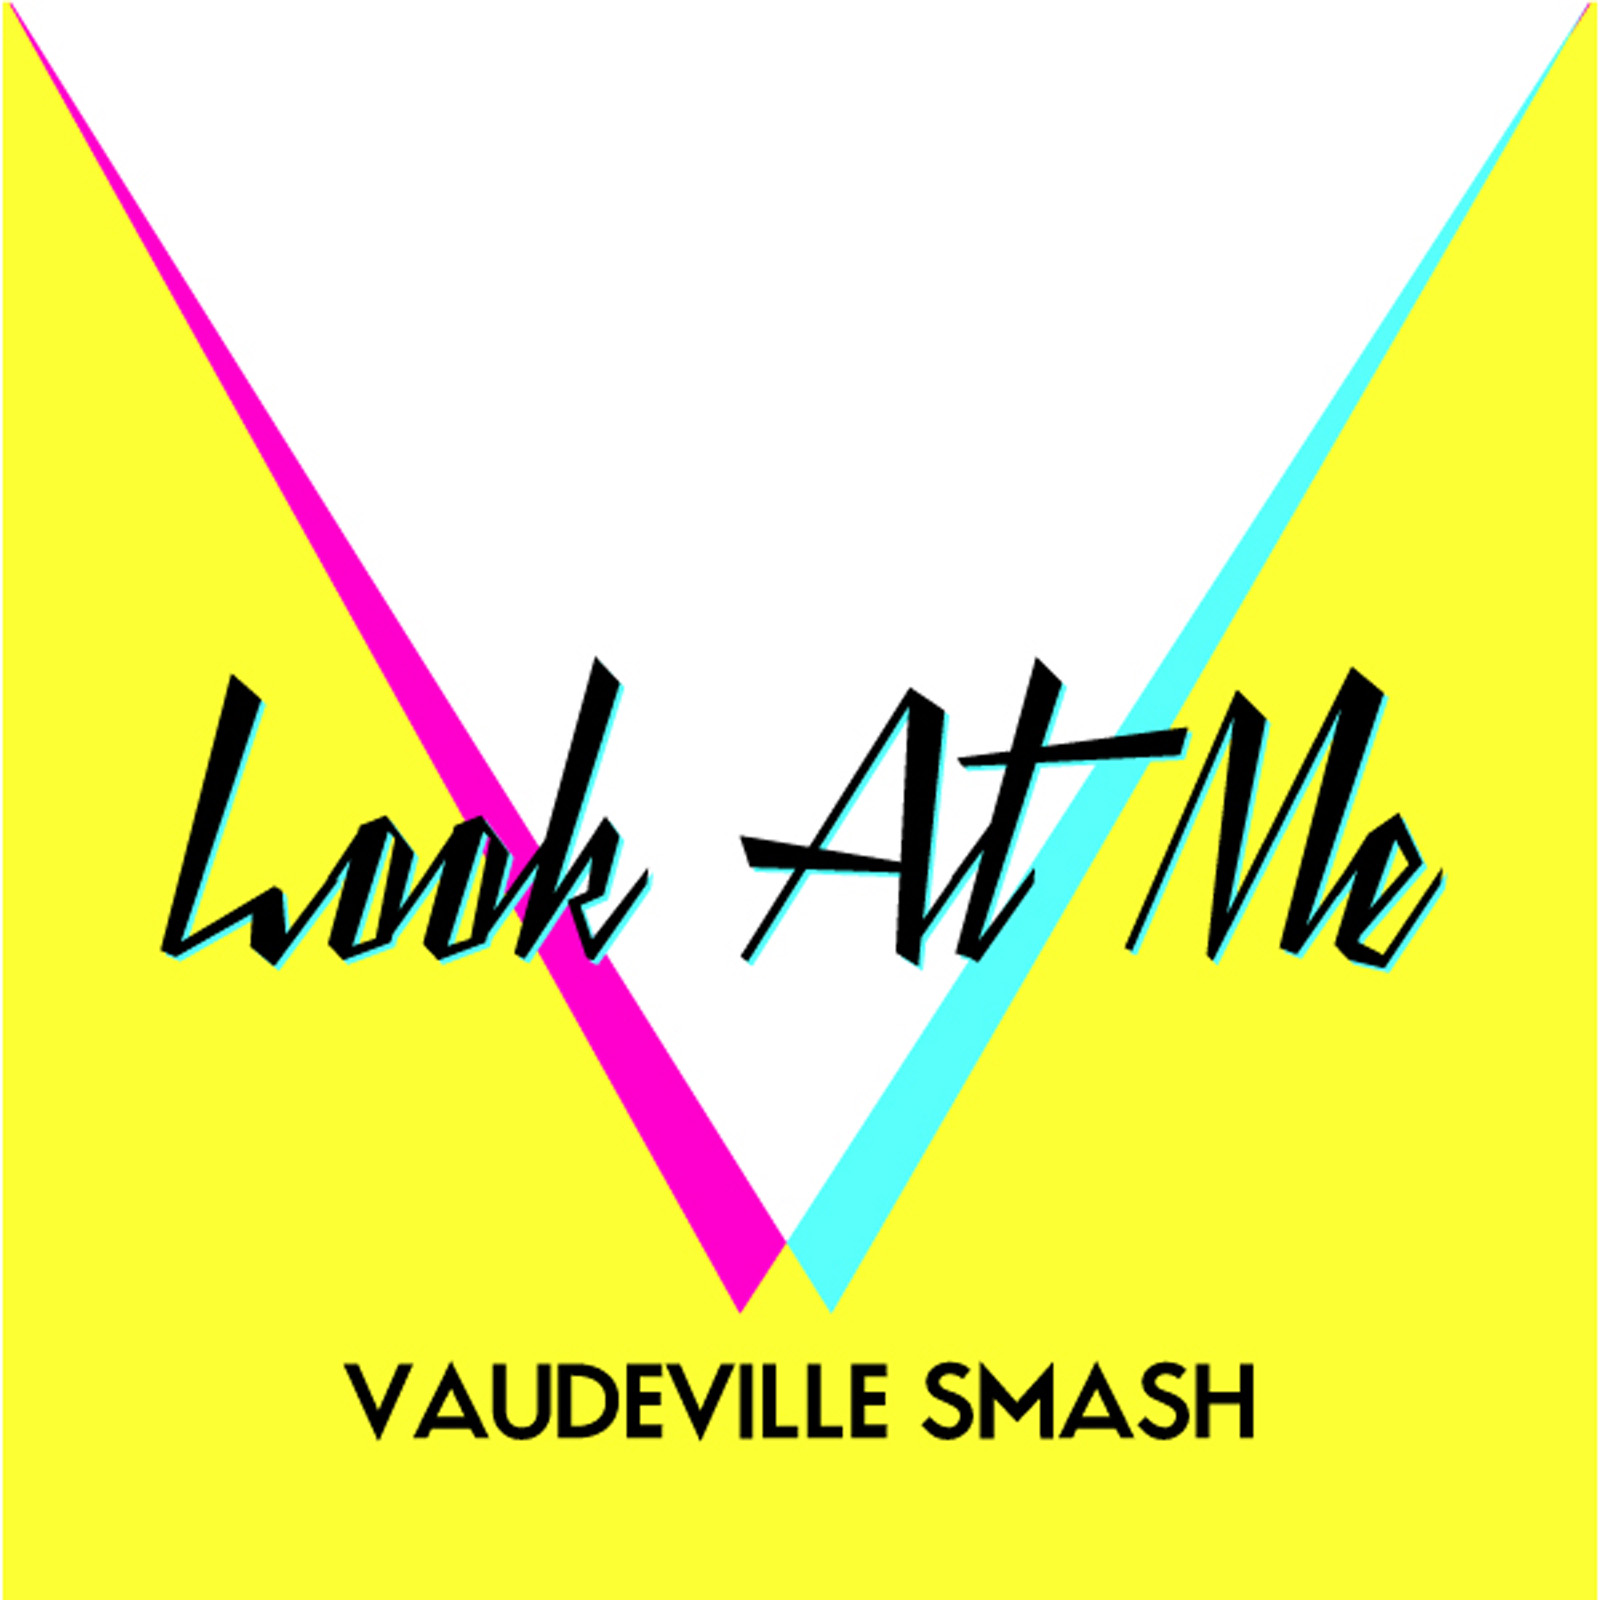 Vaudeville Smash - Look At Me (New Video)